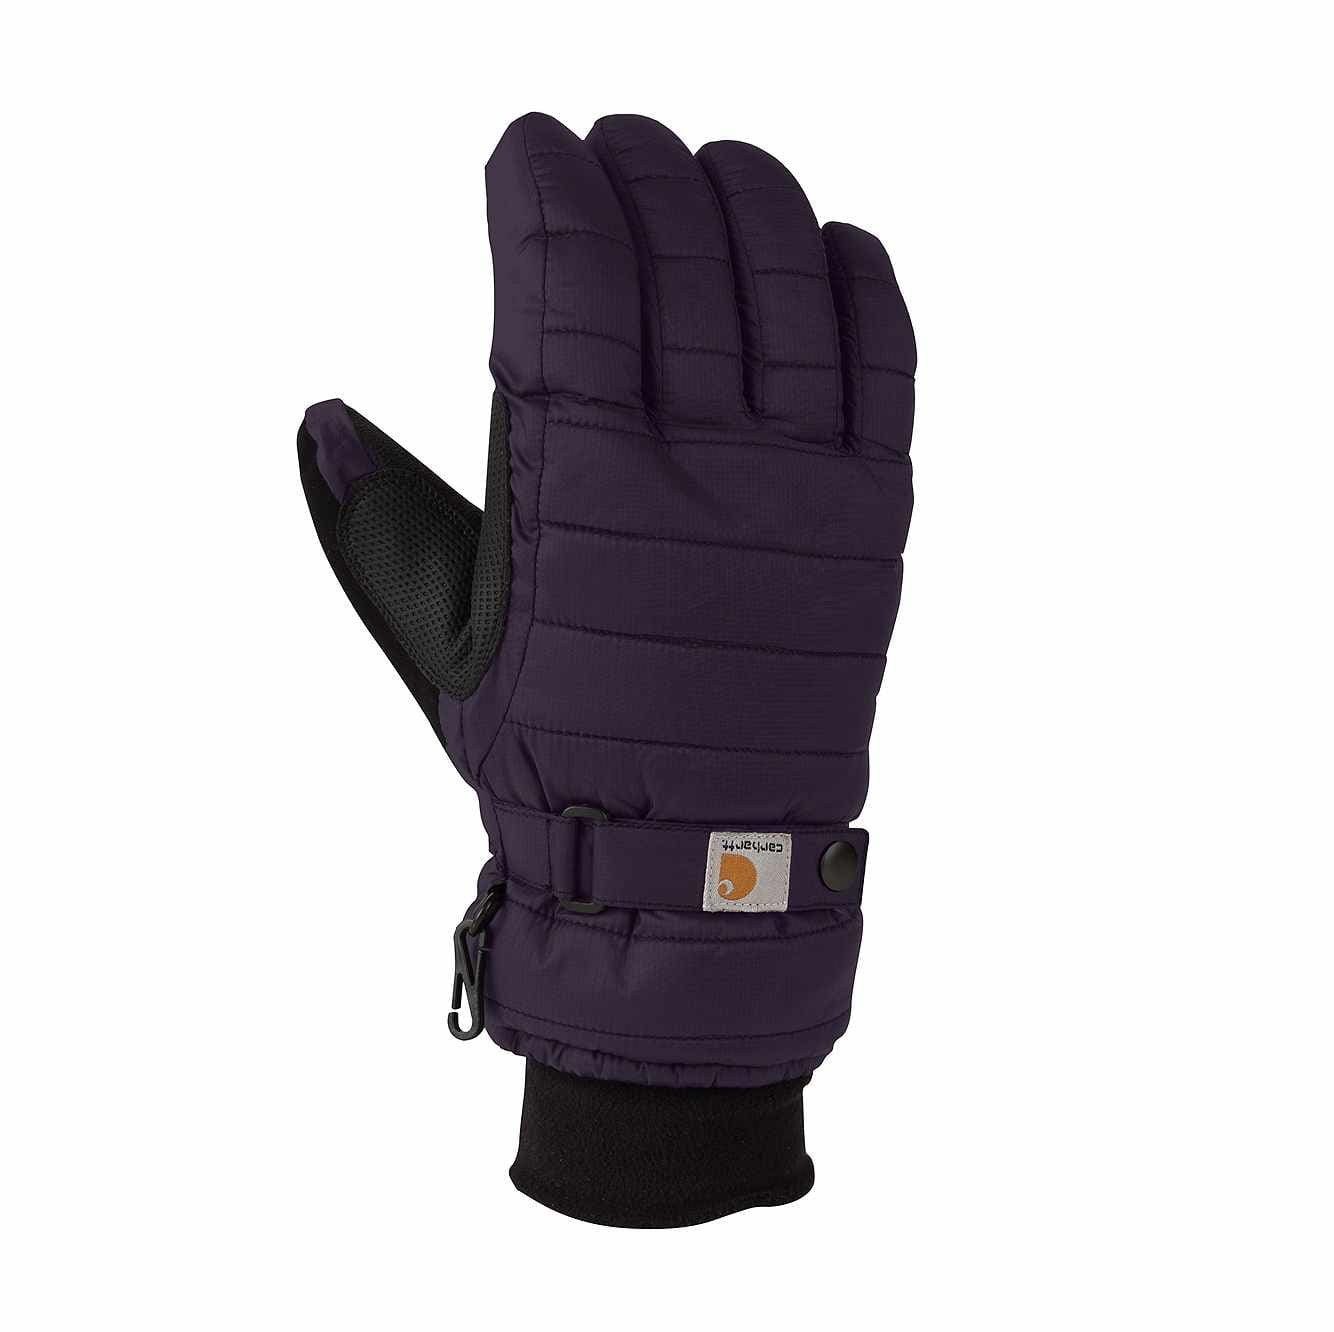 Picture of Quilts Insulated Glove in Nightshade